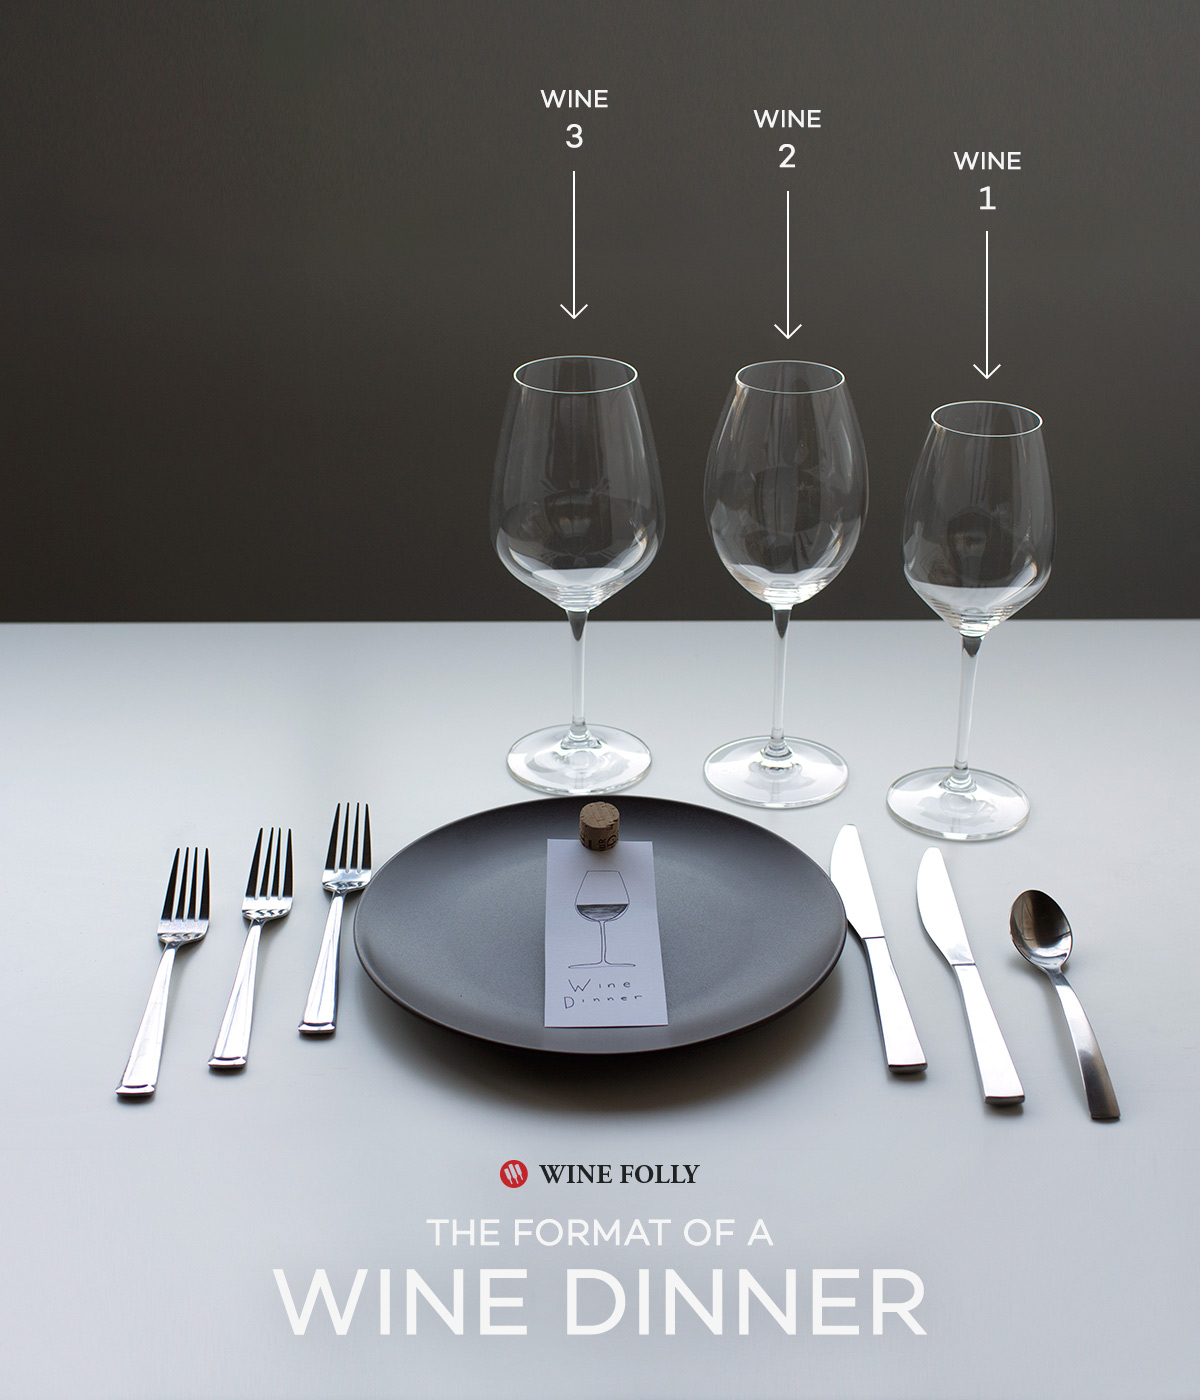 wine-dinner-format-how-to